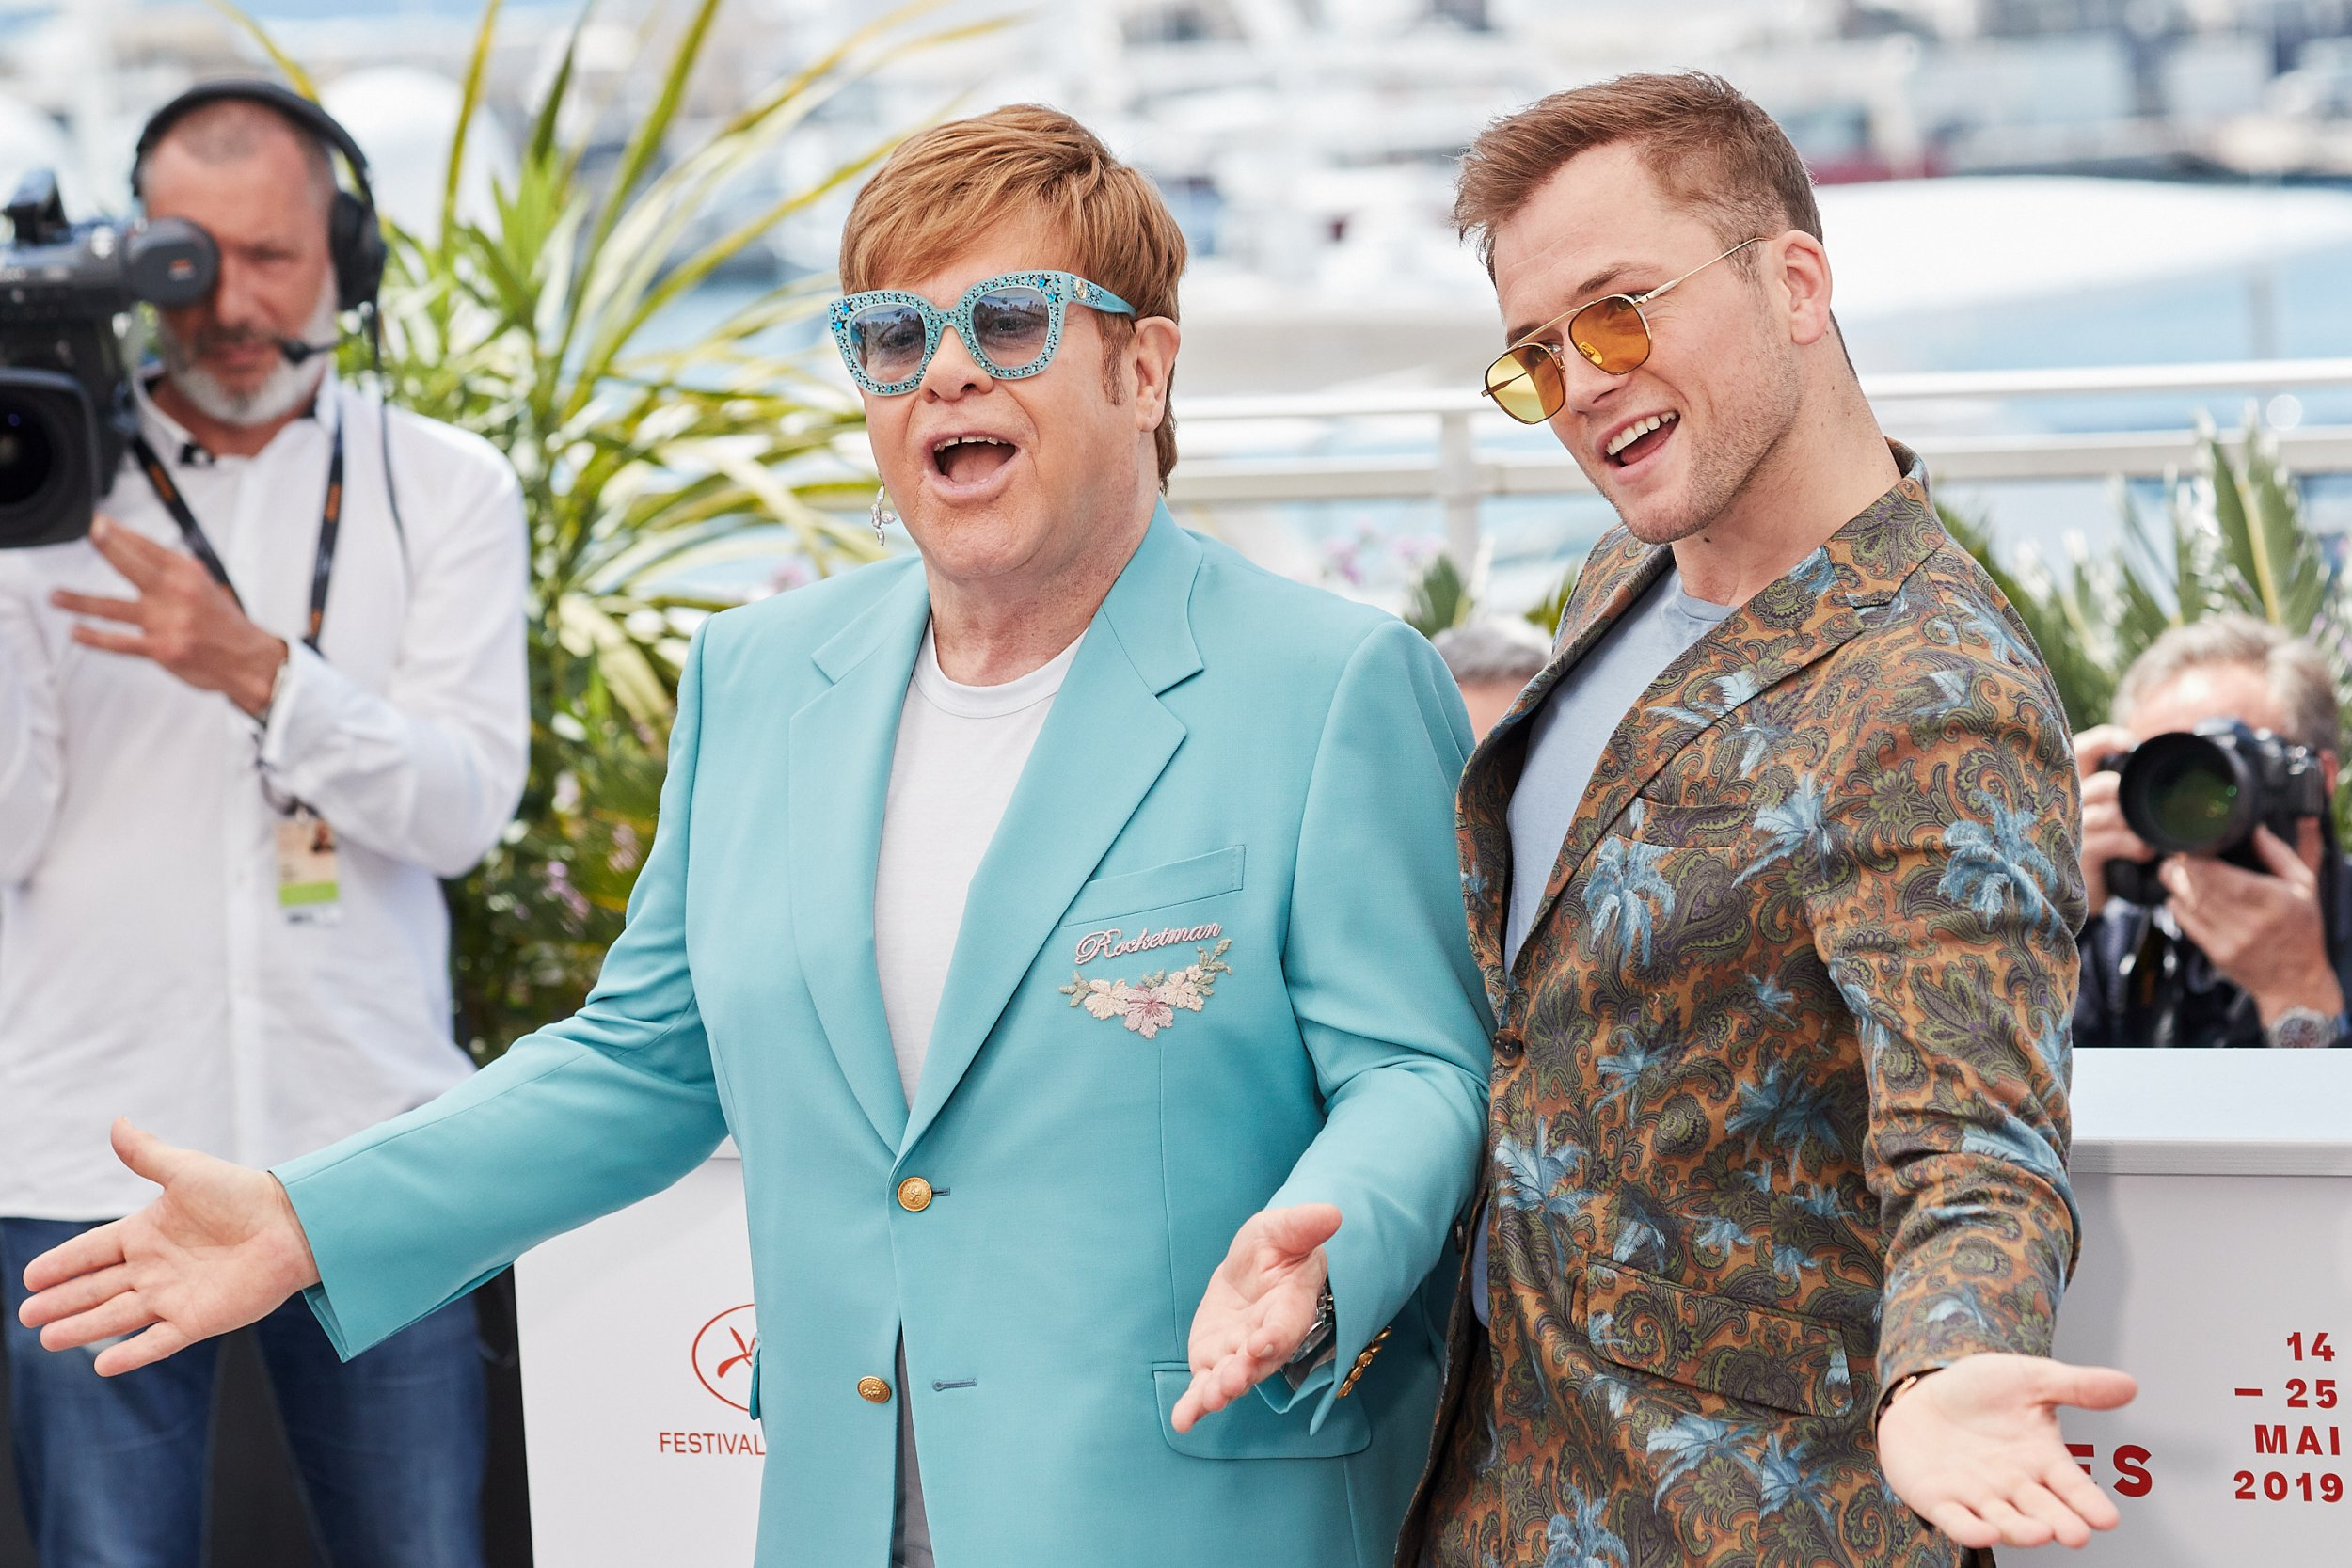 Sir Elton John and Taron Egerton attend a photocall for Rocketman during a 72nd annual Cannes Film Festival